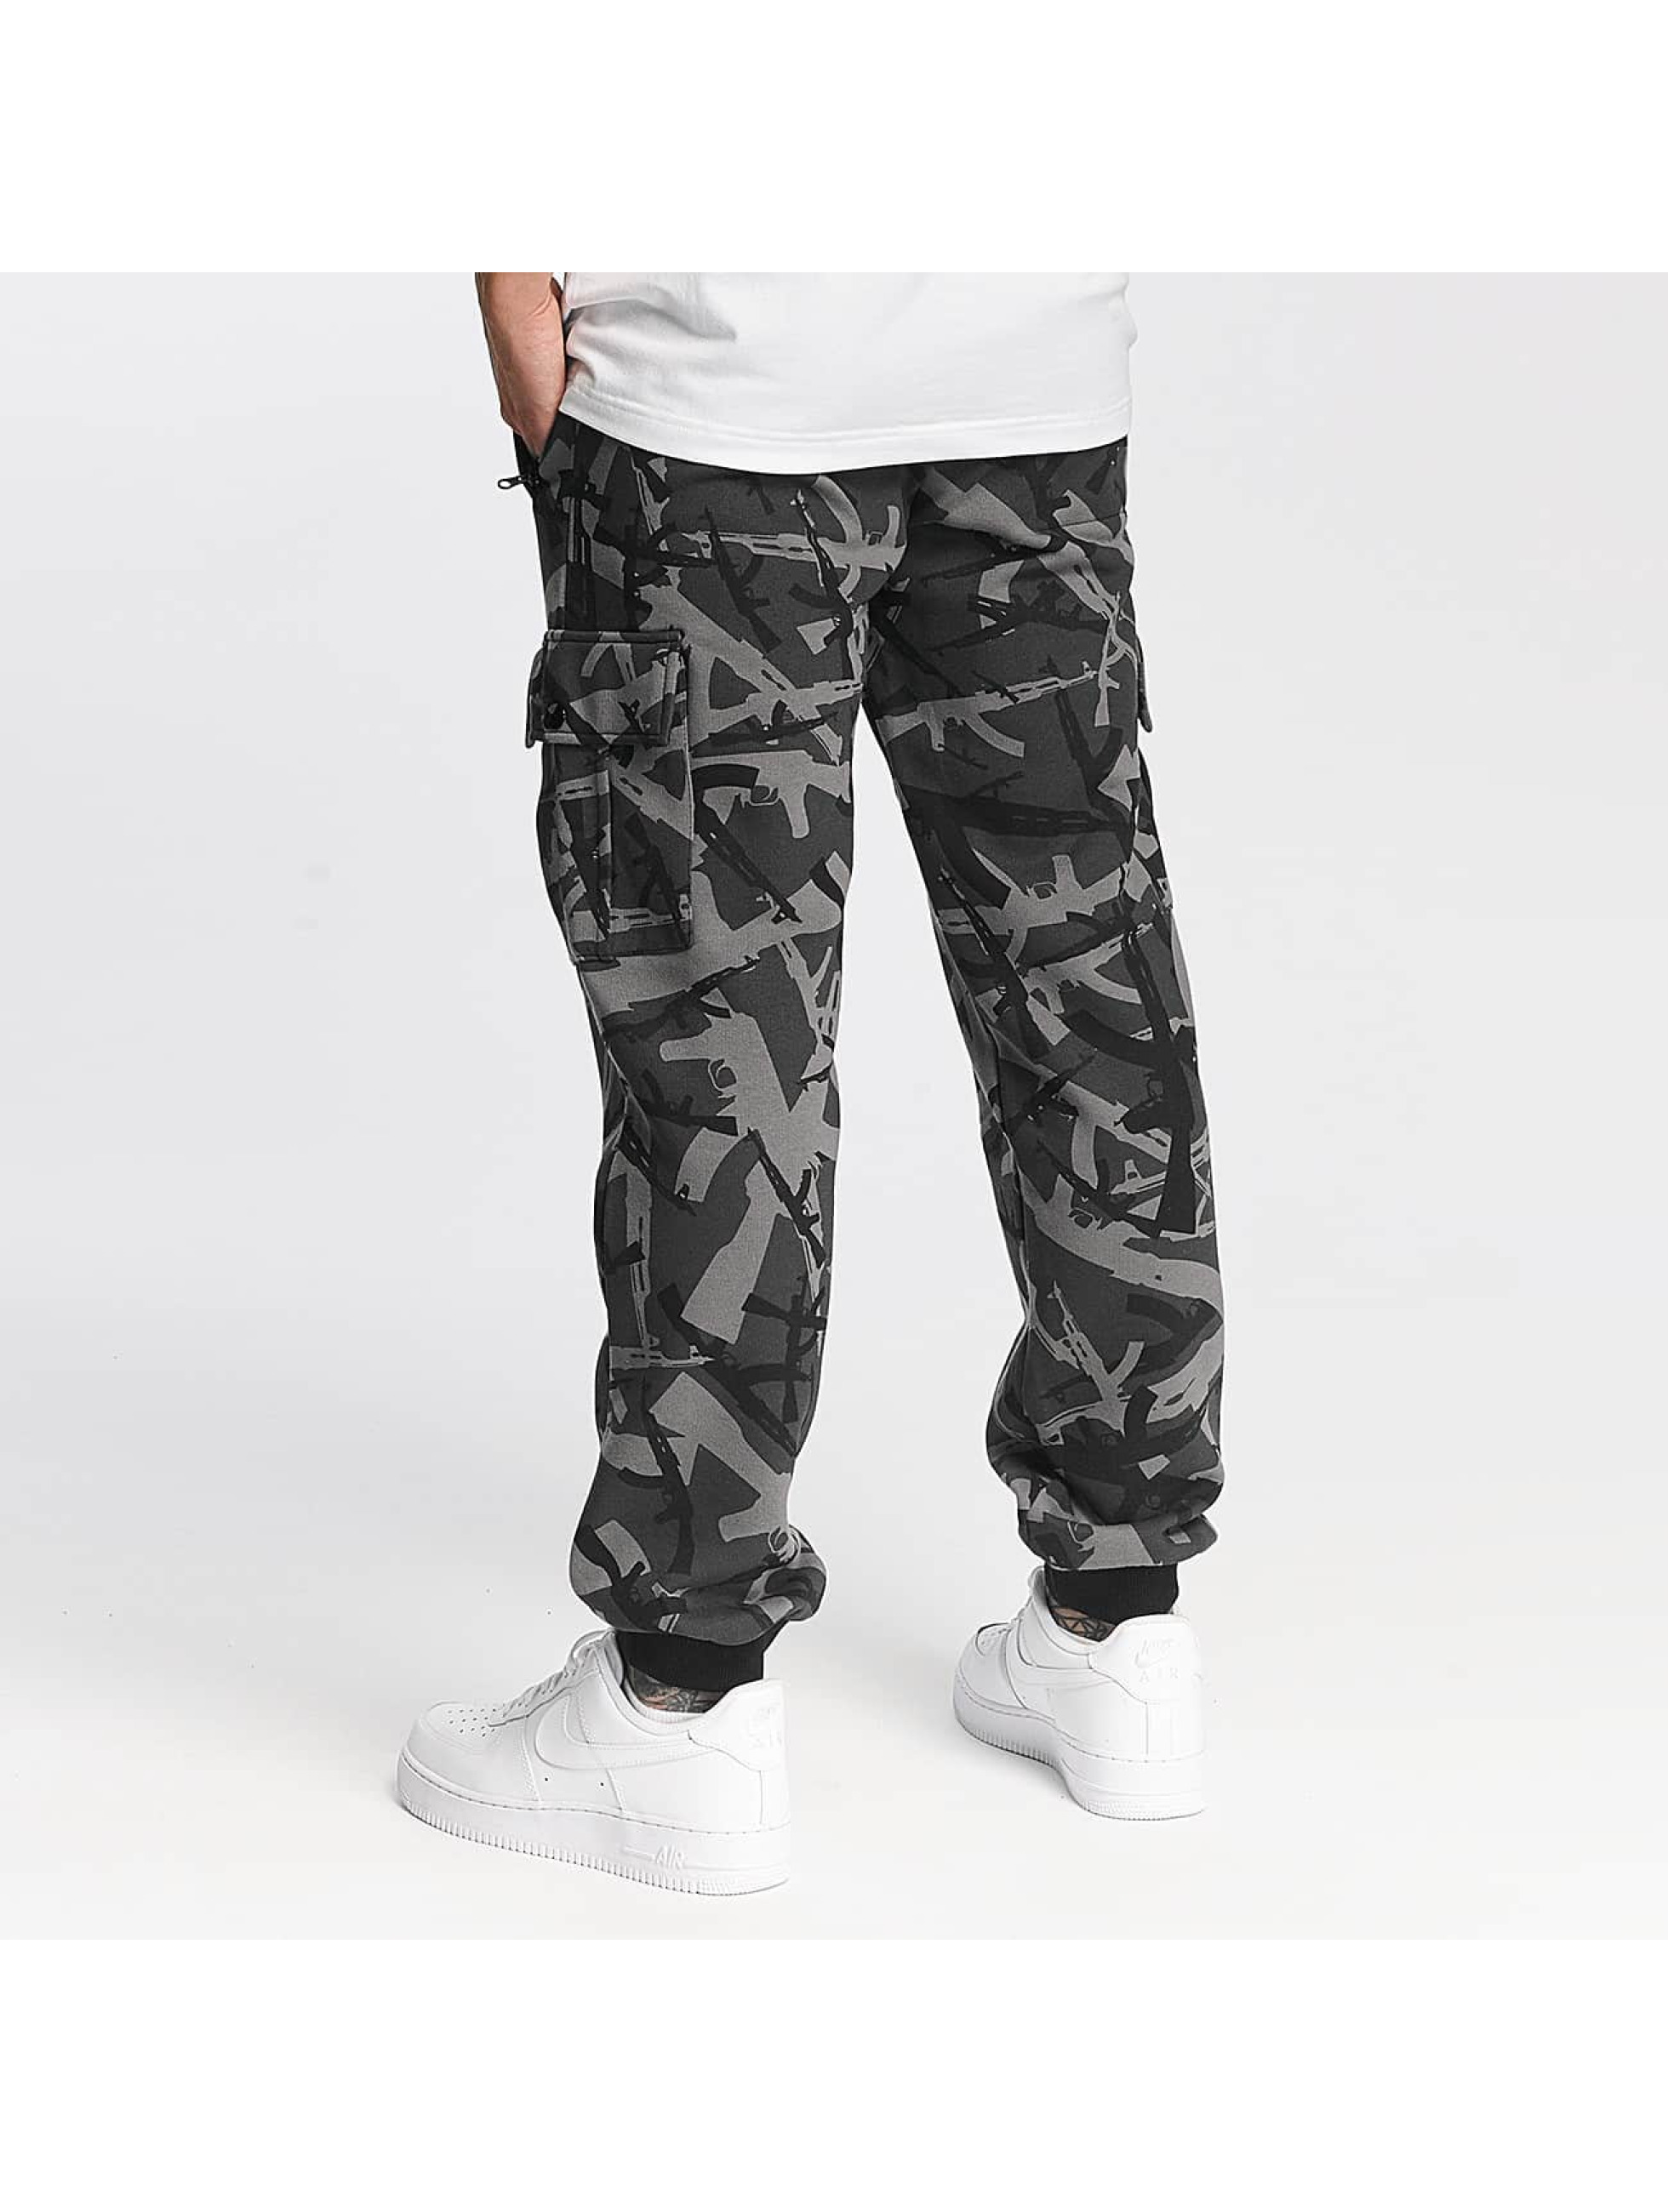 Pusher Apparel Spodnie do joggingu AK Camo moro